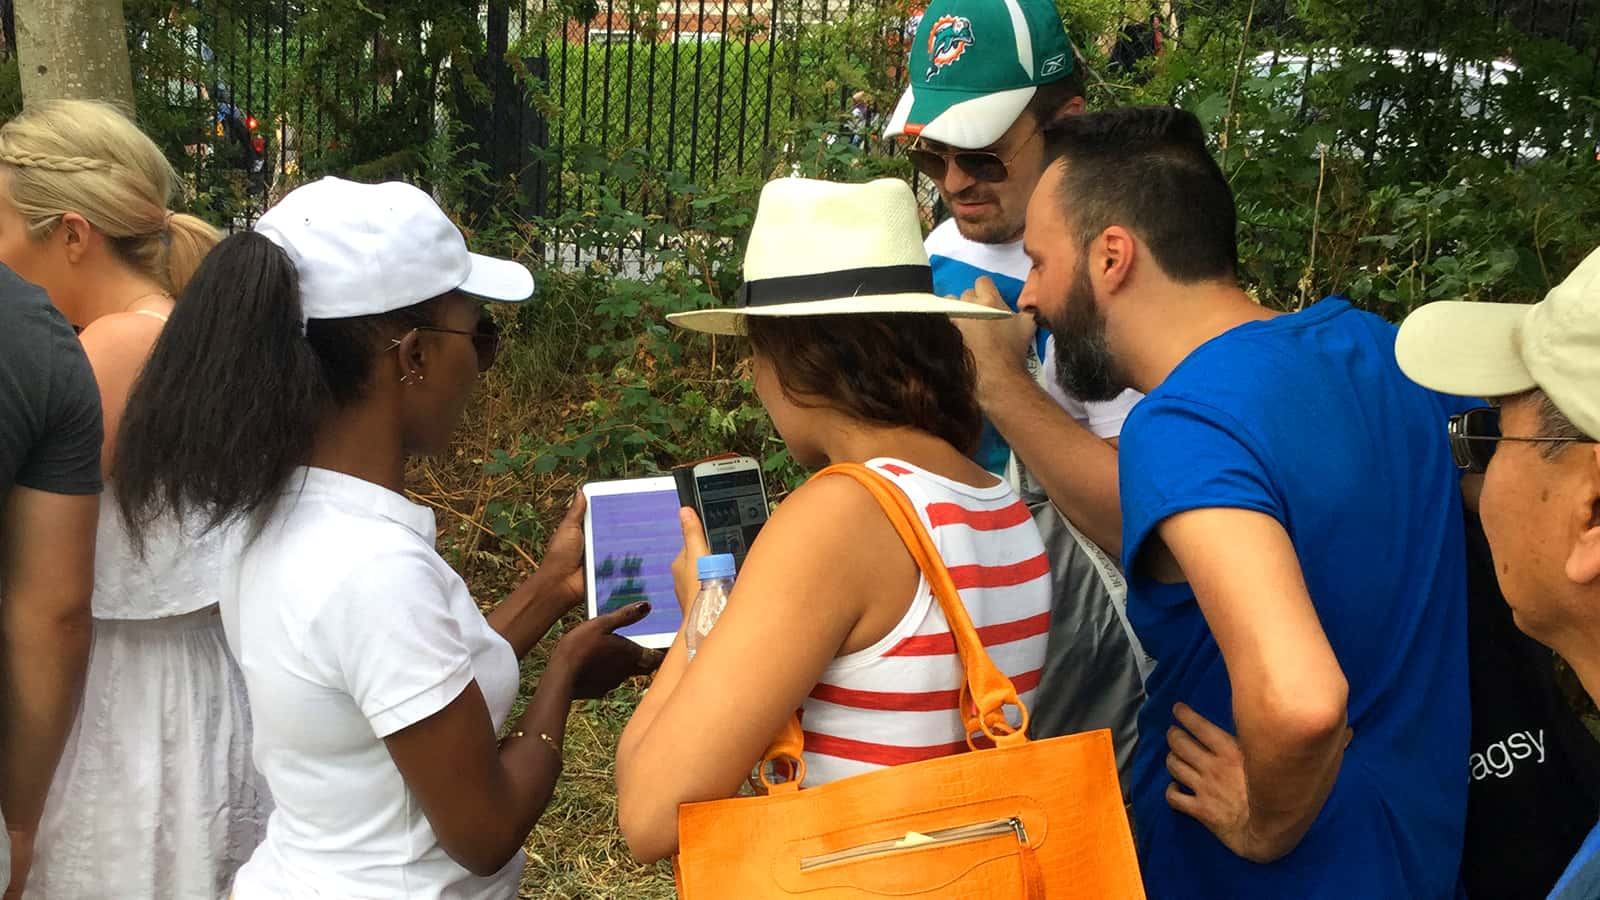 Tennis fans interacting with the Twitter Wimbledon Queue digital experience 2015.